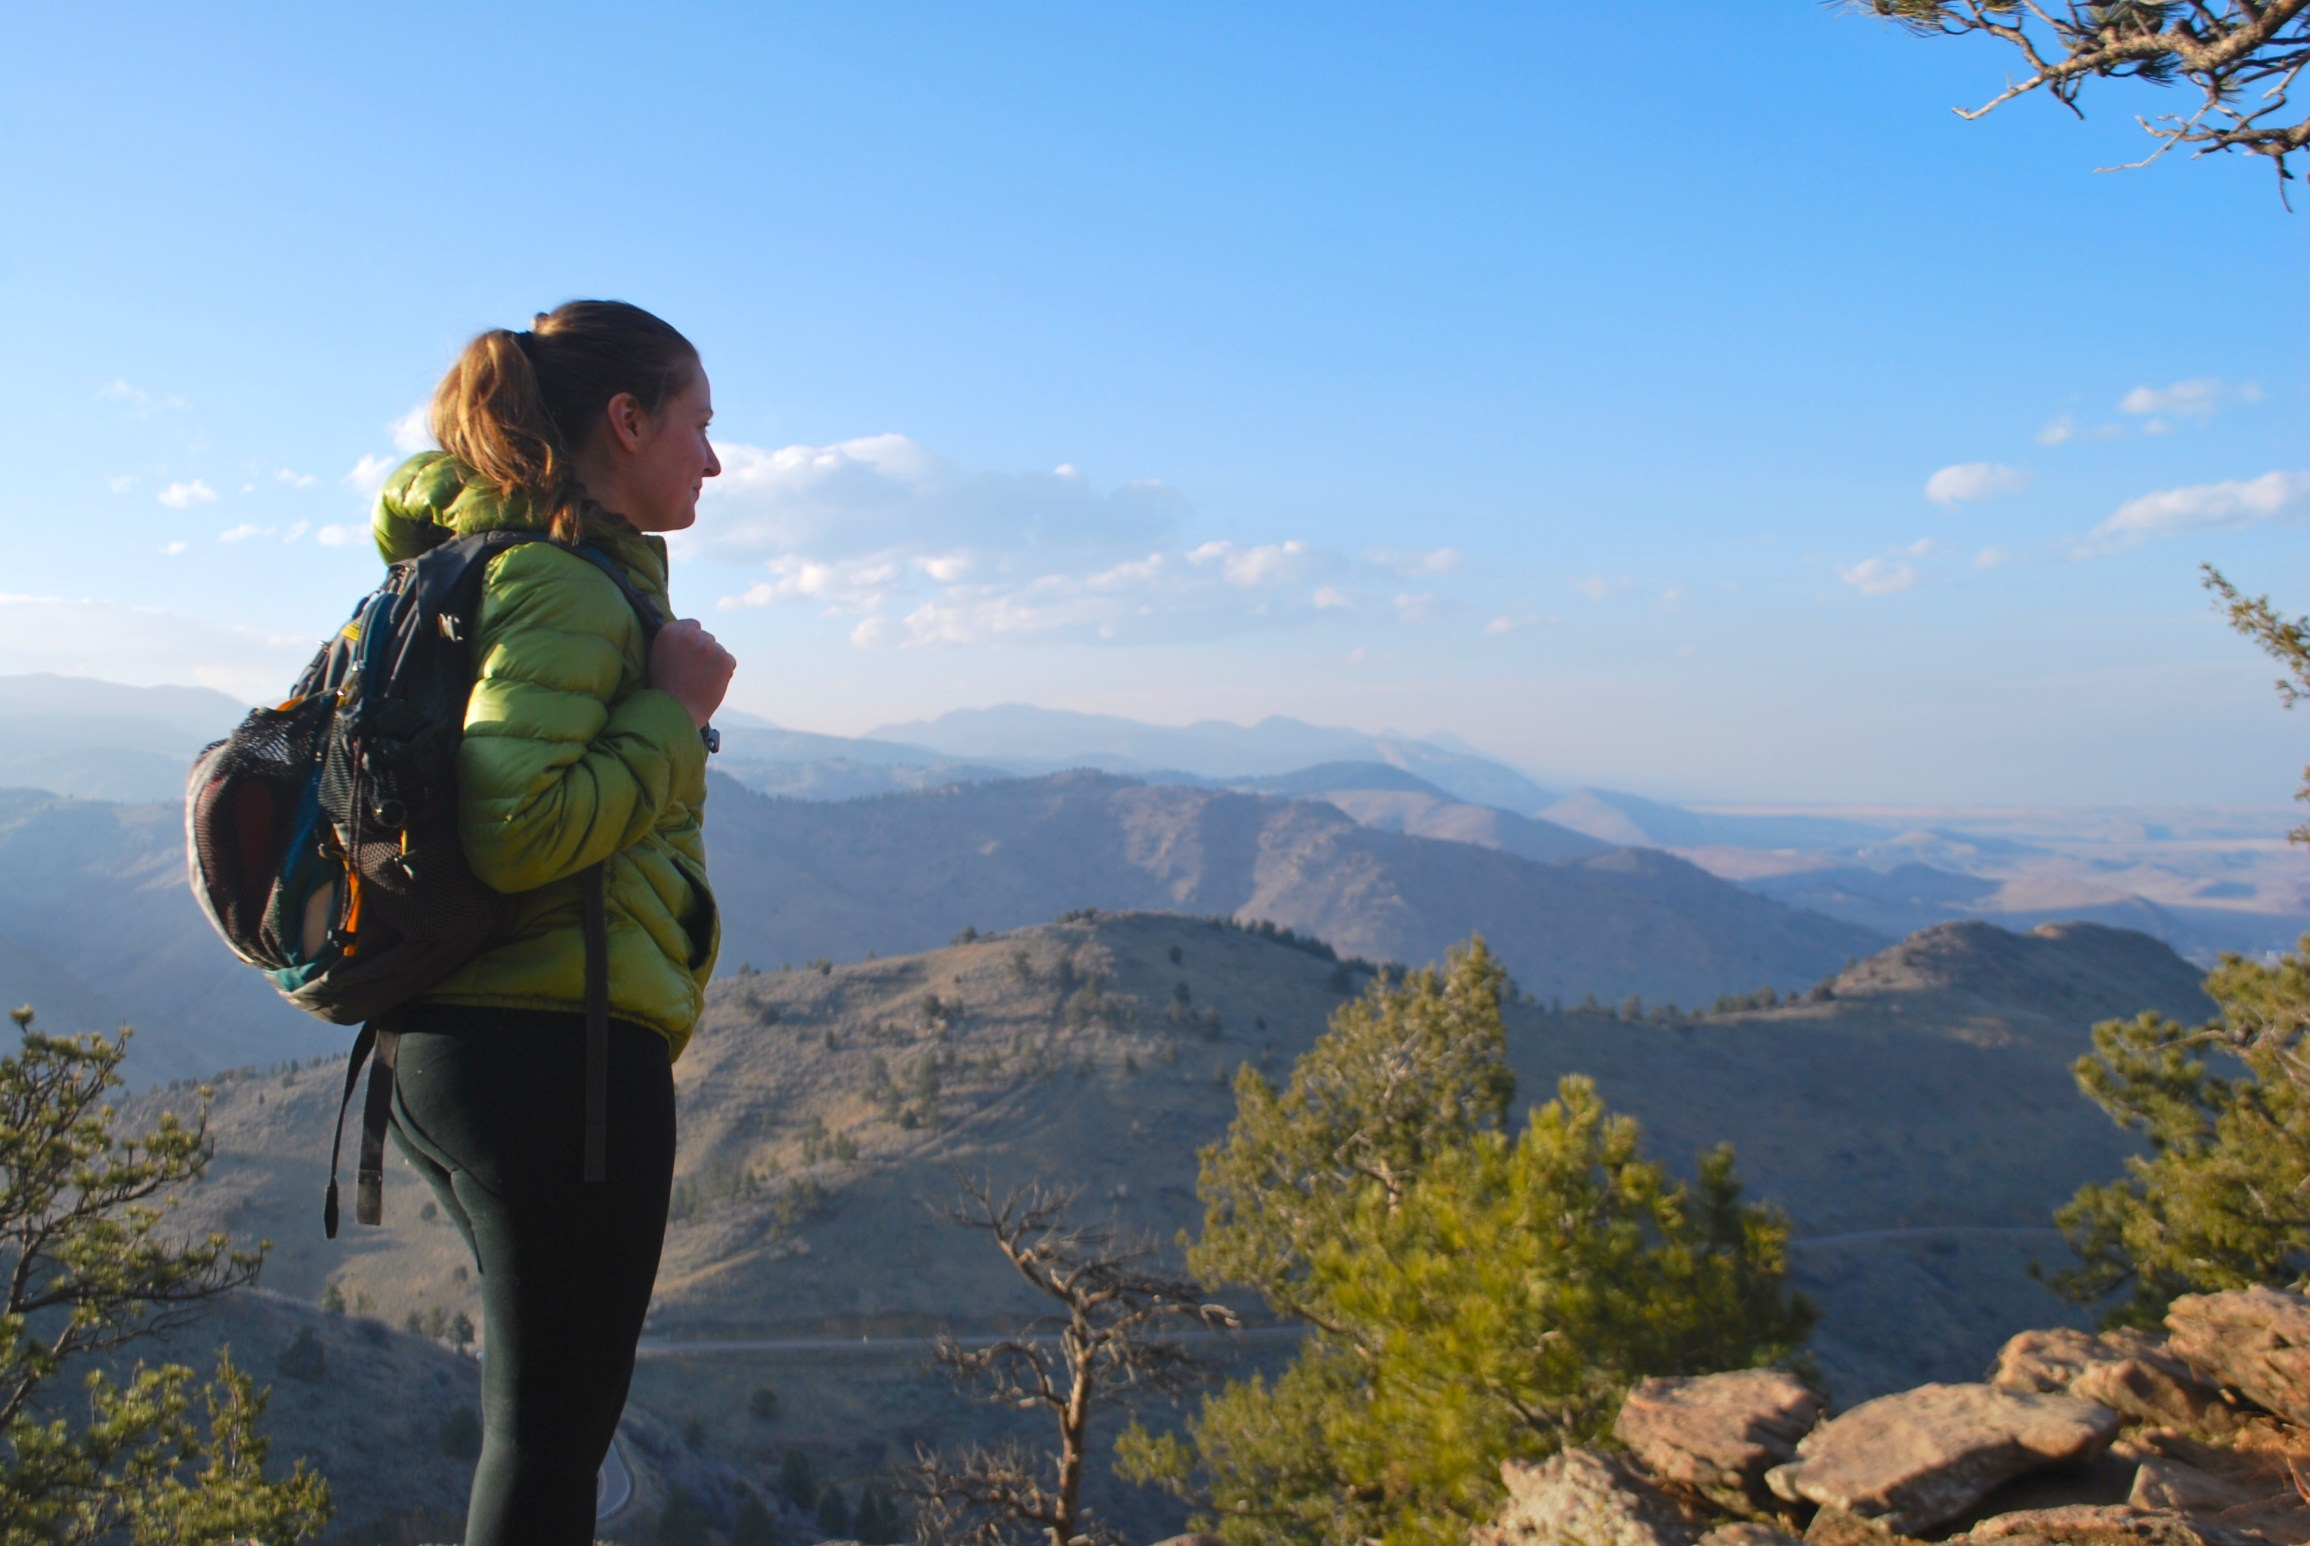 The ten hiking essentials are ten items that every hiker should carry in their daypack. They keep you safe, comfortable, and prepared for a full day of hiking. This is the ultimate hike packing list and includes tips for women and for kids on their next adventure. Pin now and read before your next hike.